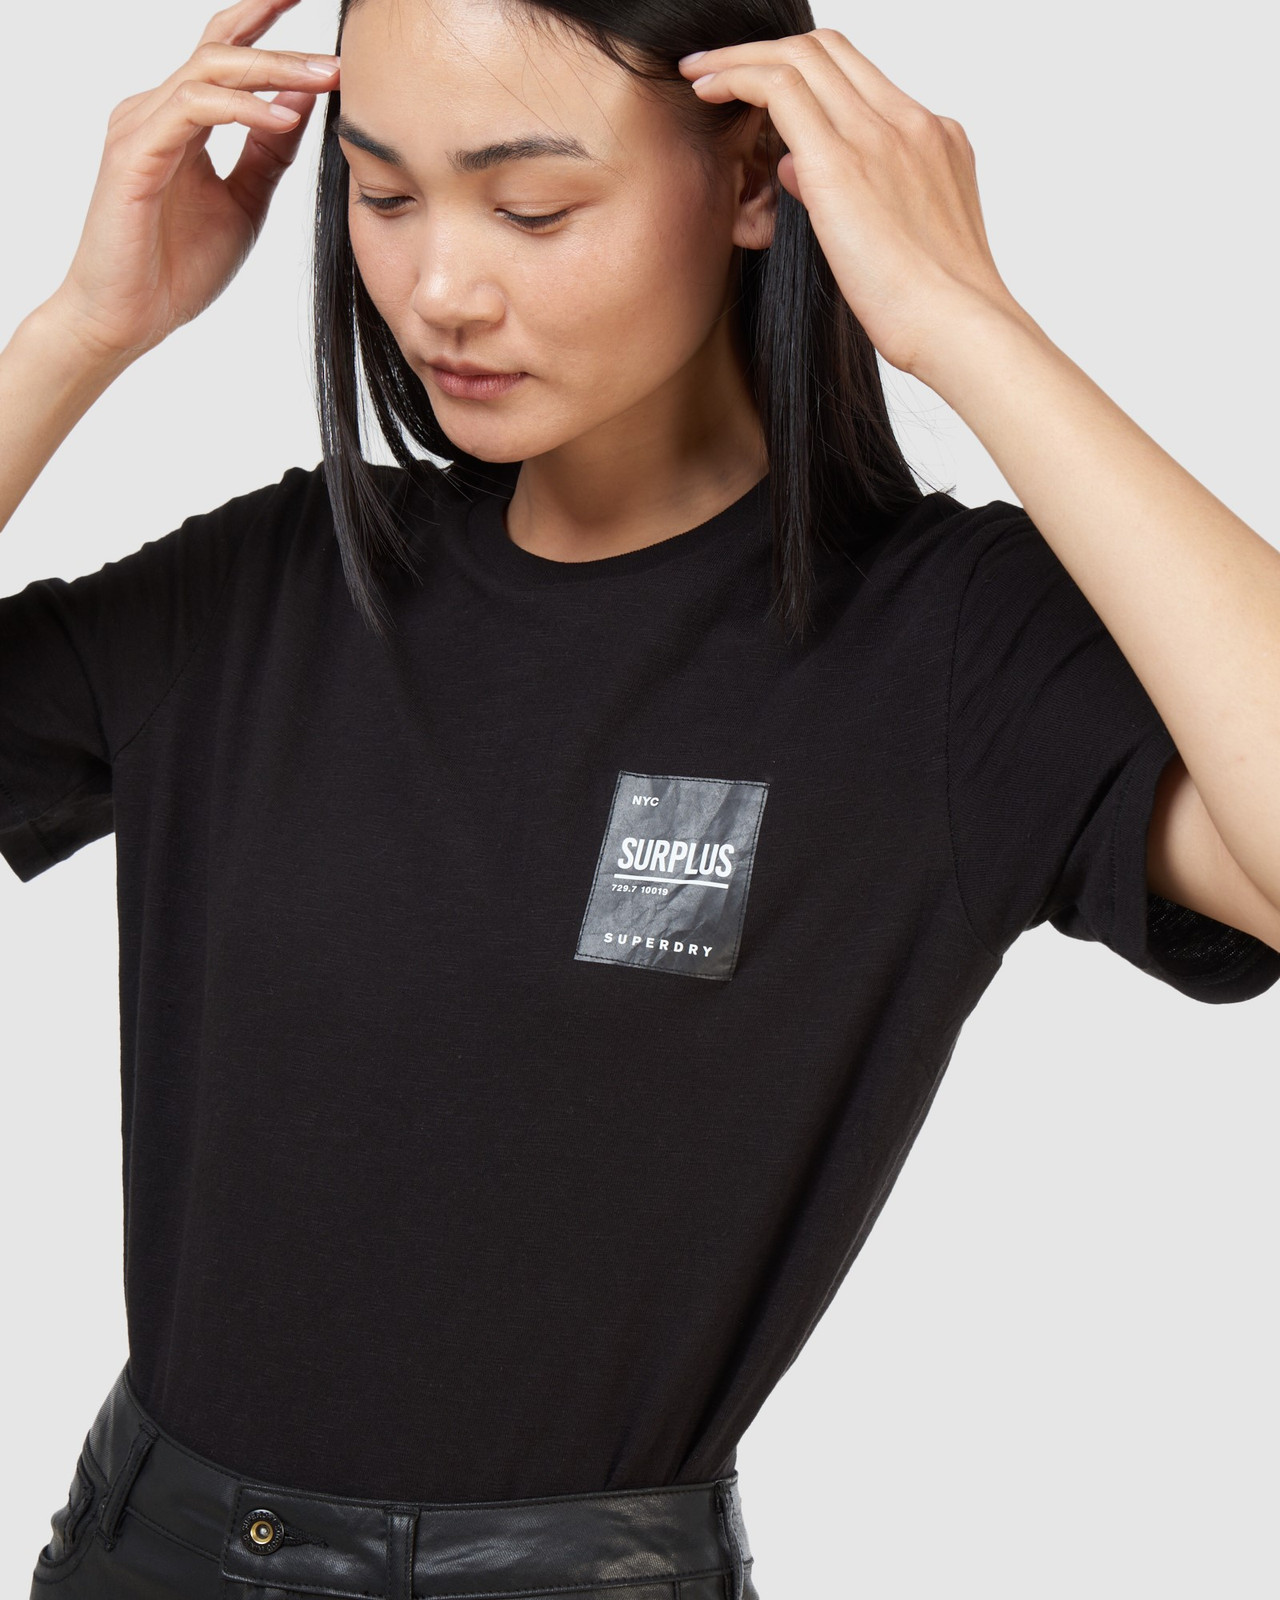 Superdry Womens SURPLUS LABEL TEE Black Printed T Shirts 5